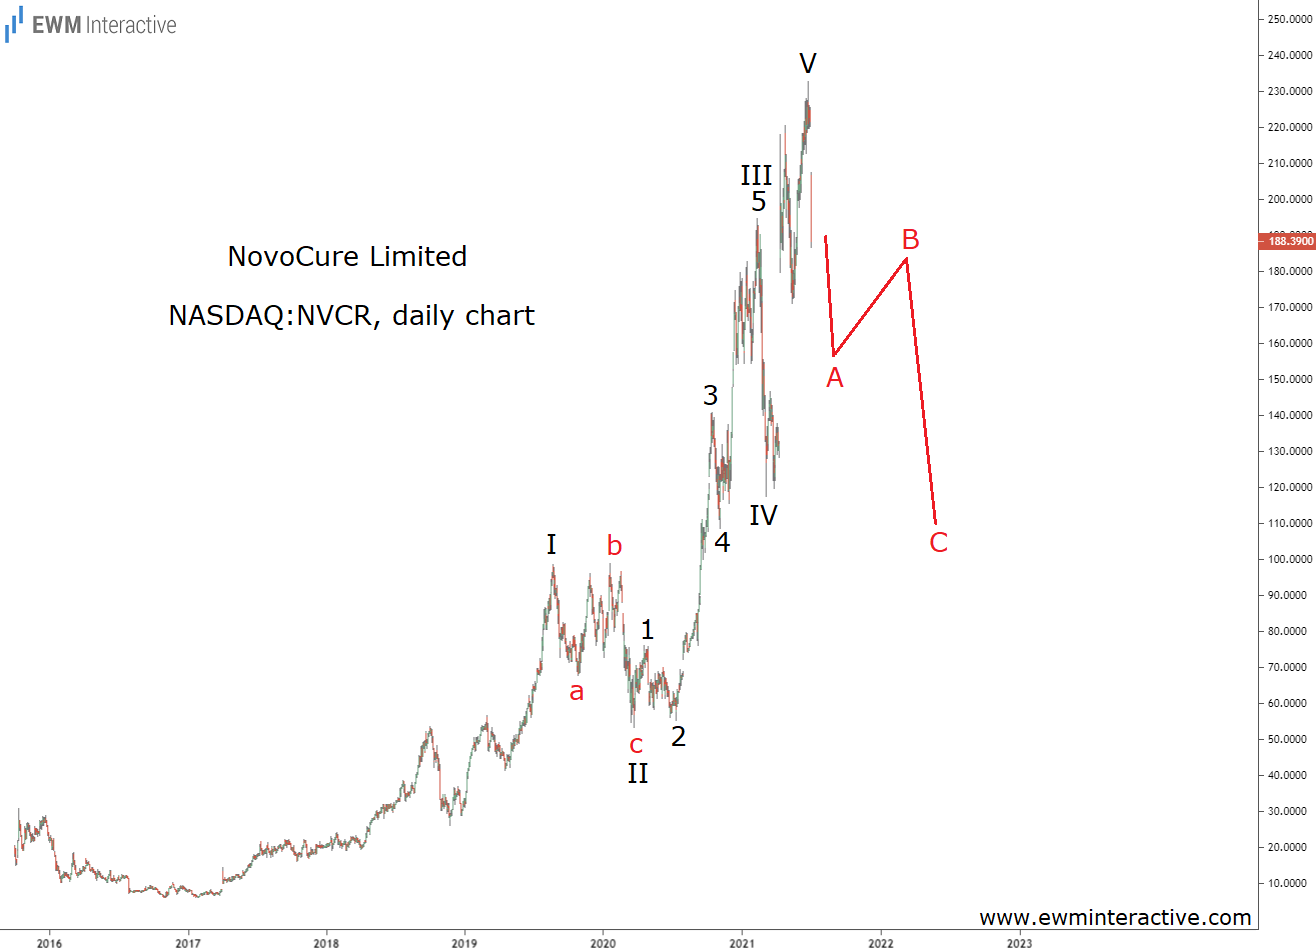 NovoCure Stock can lose another 40% in Elliott Wave Correction